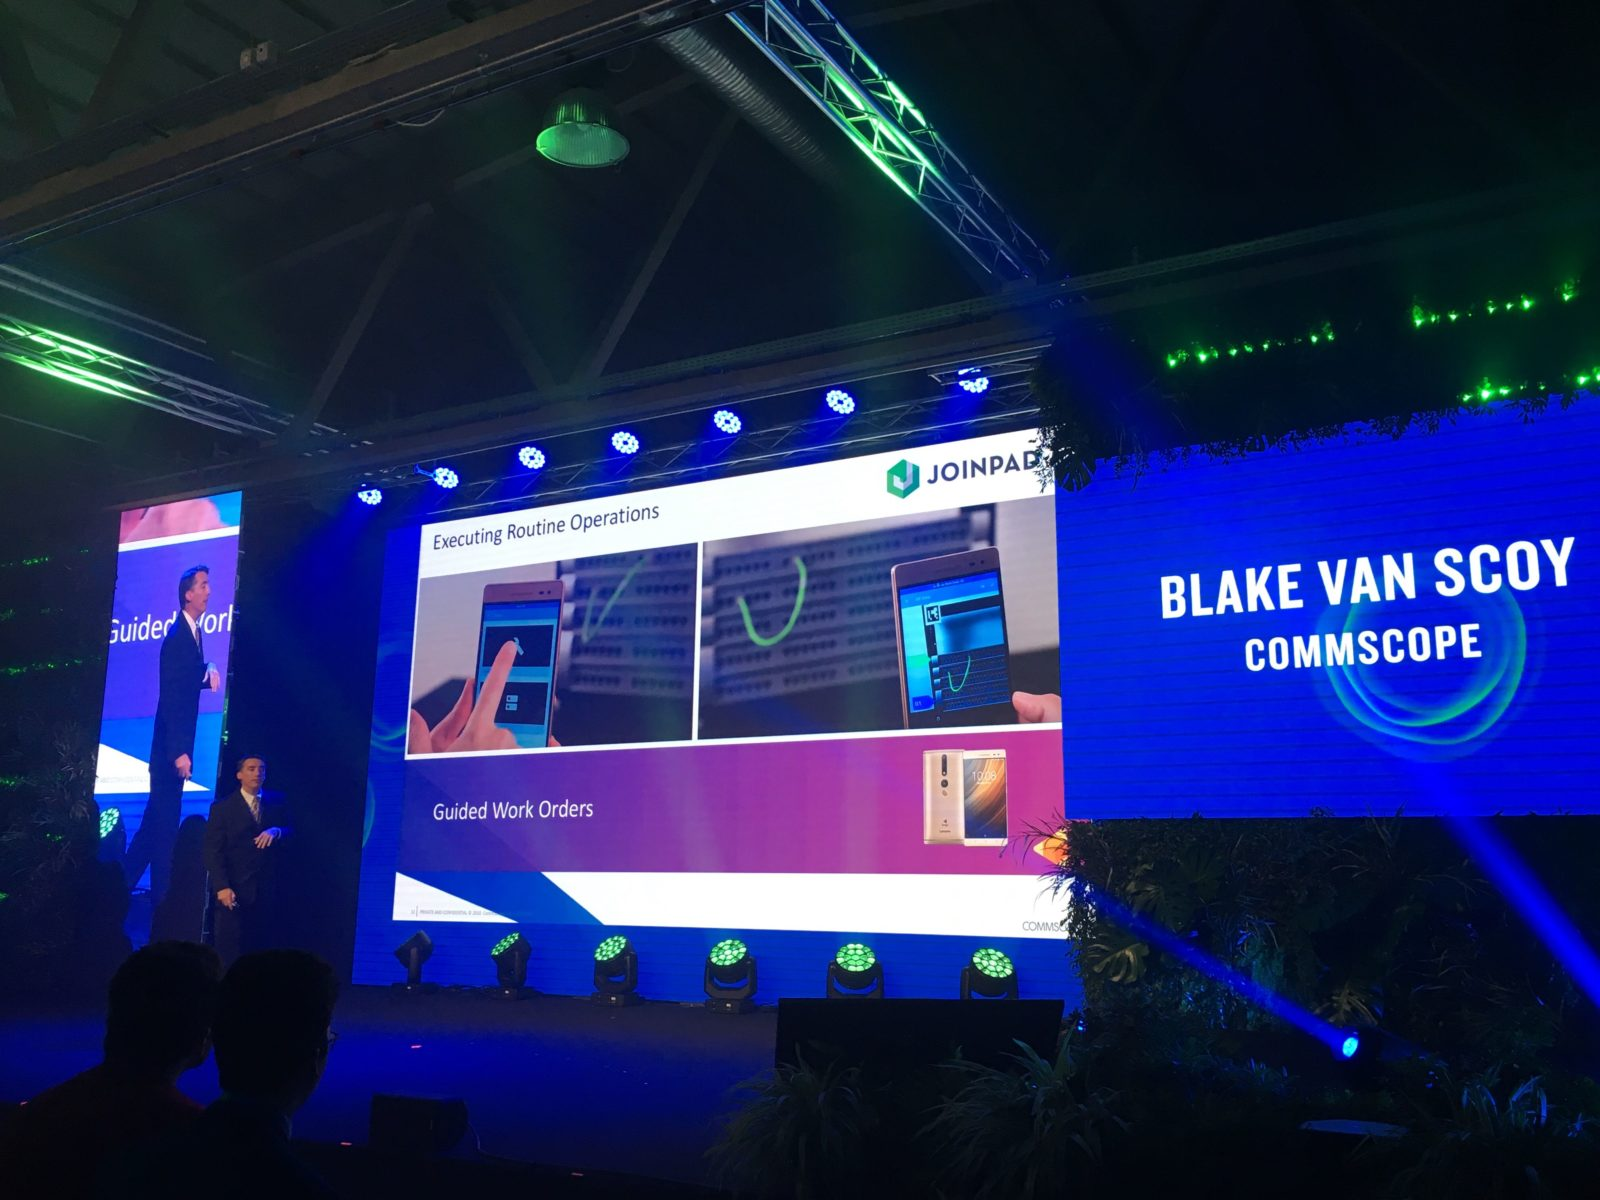 Commscope presents collaboration with JoinPad at Futureland